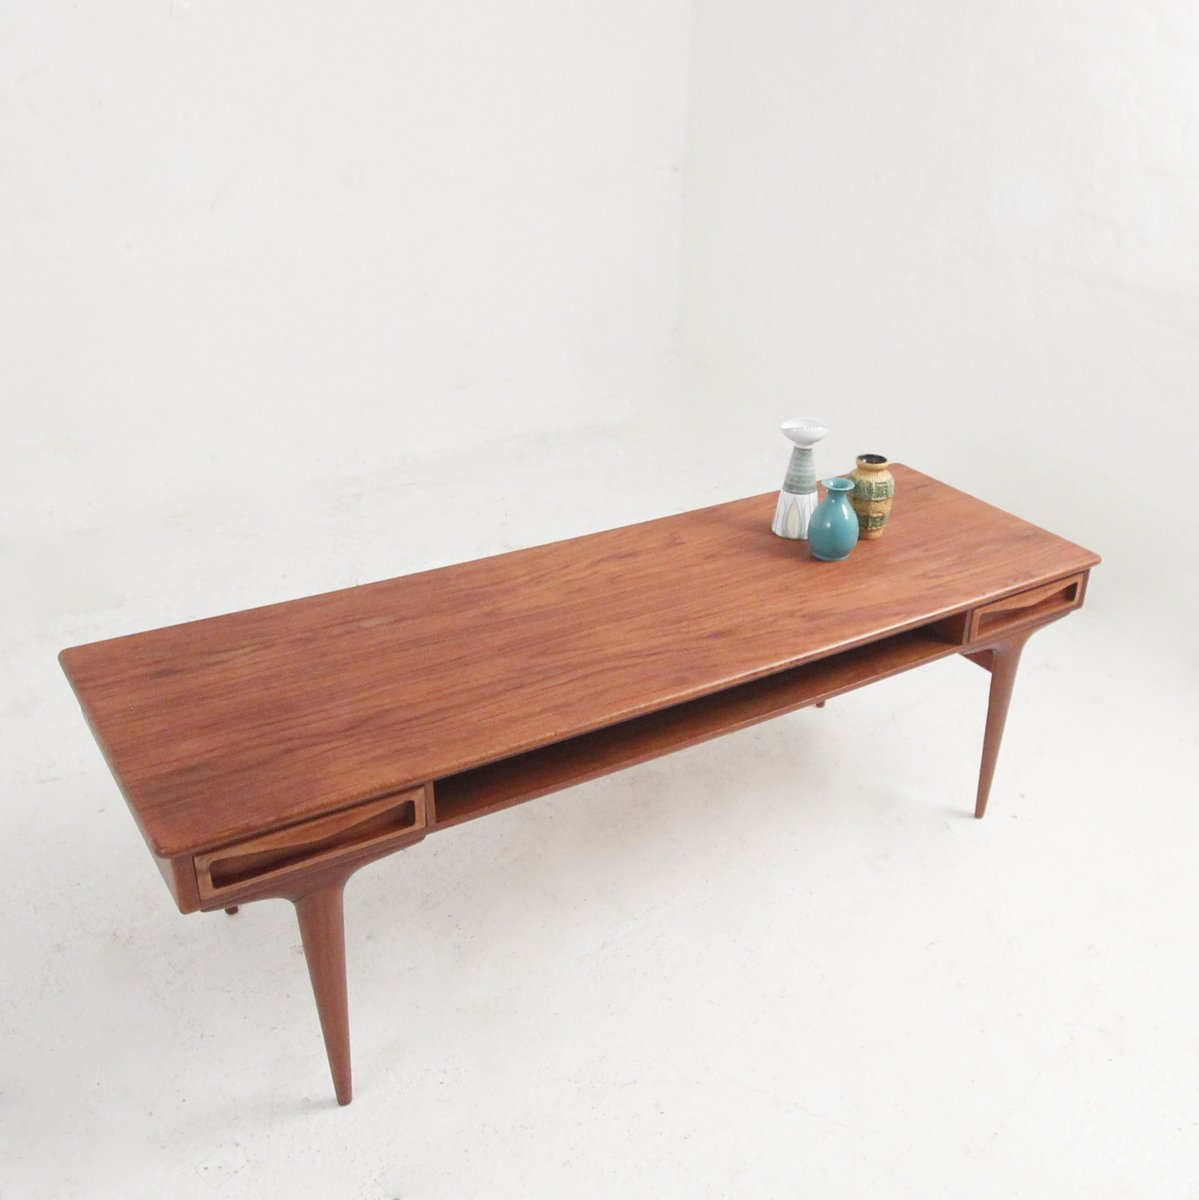 Danish Mid-century Coffee Table In Teak With Two Drawers